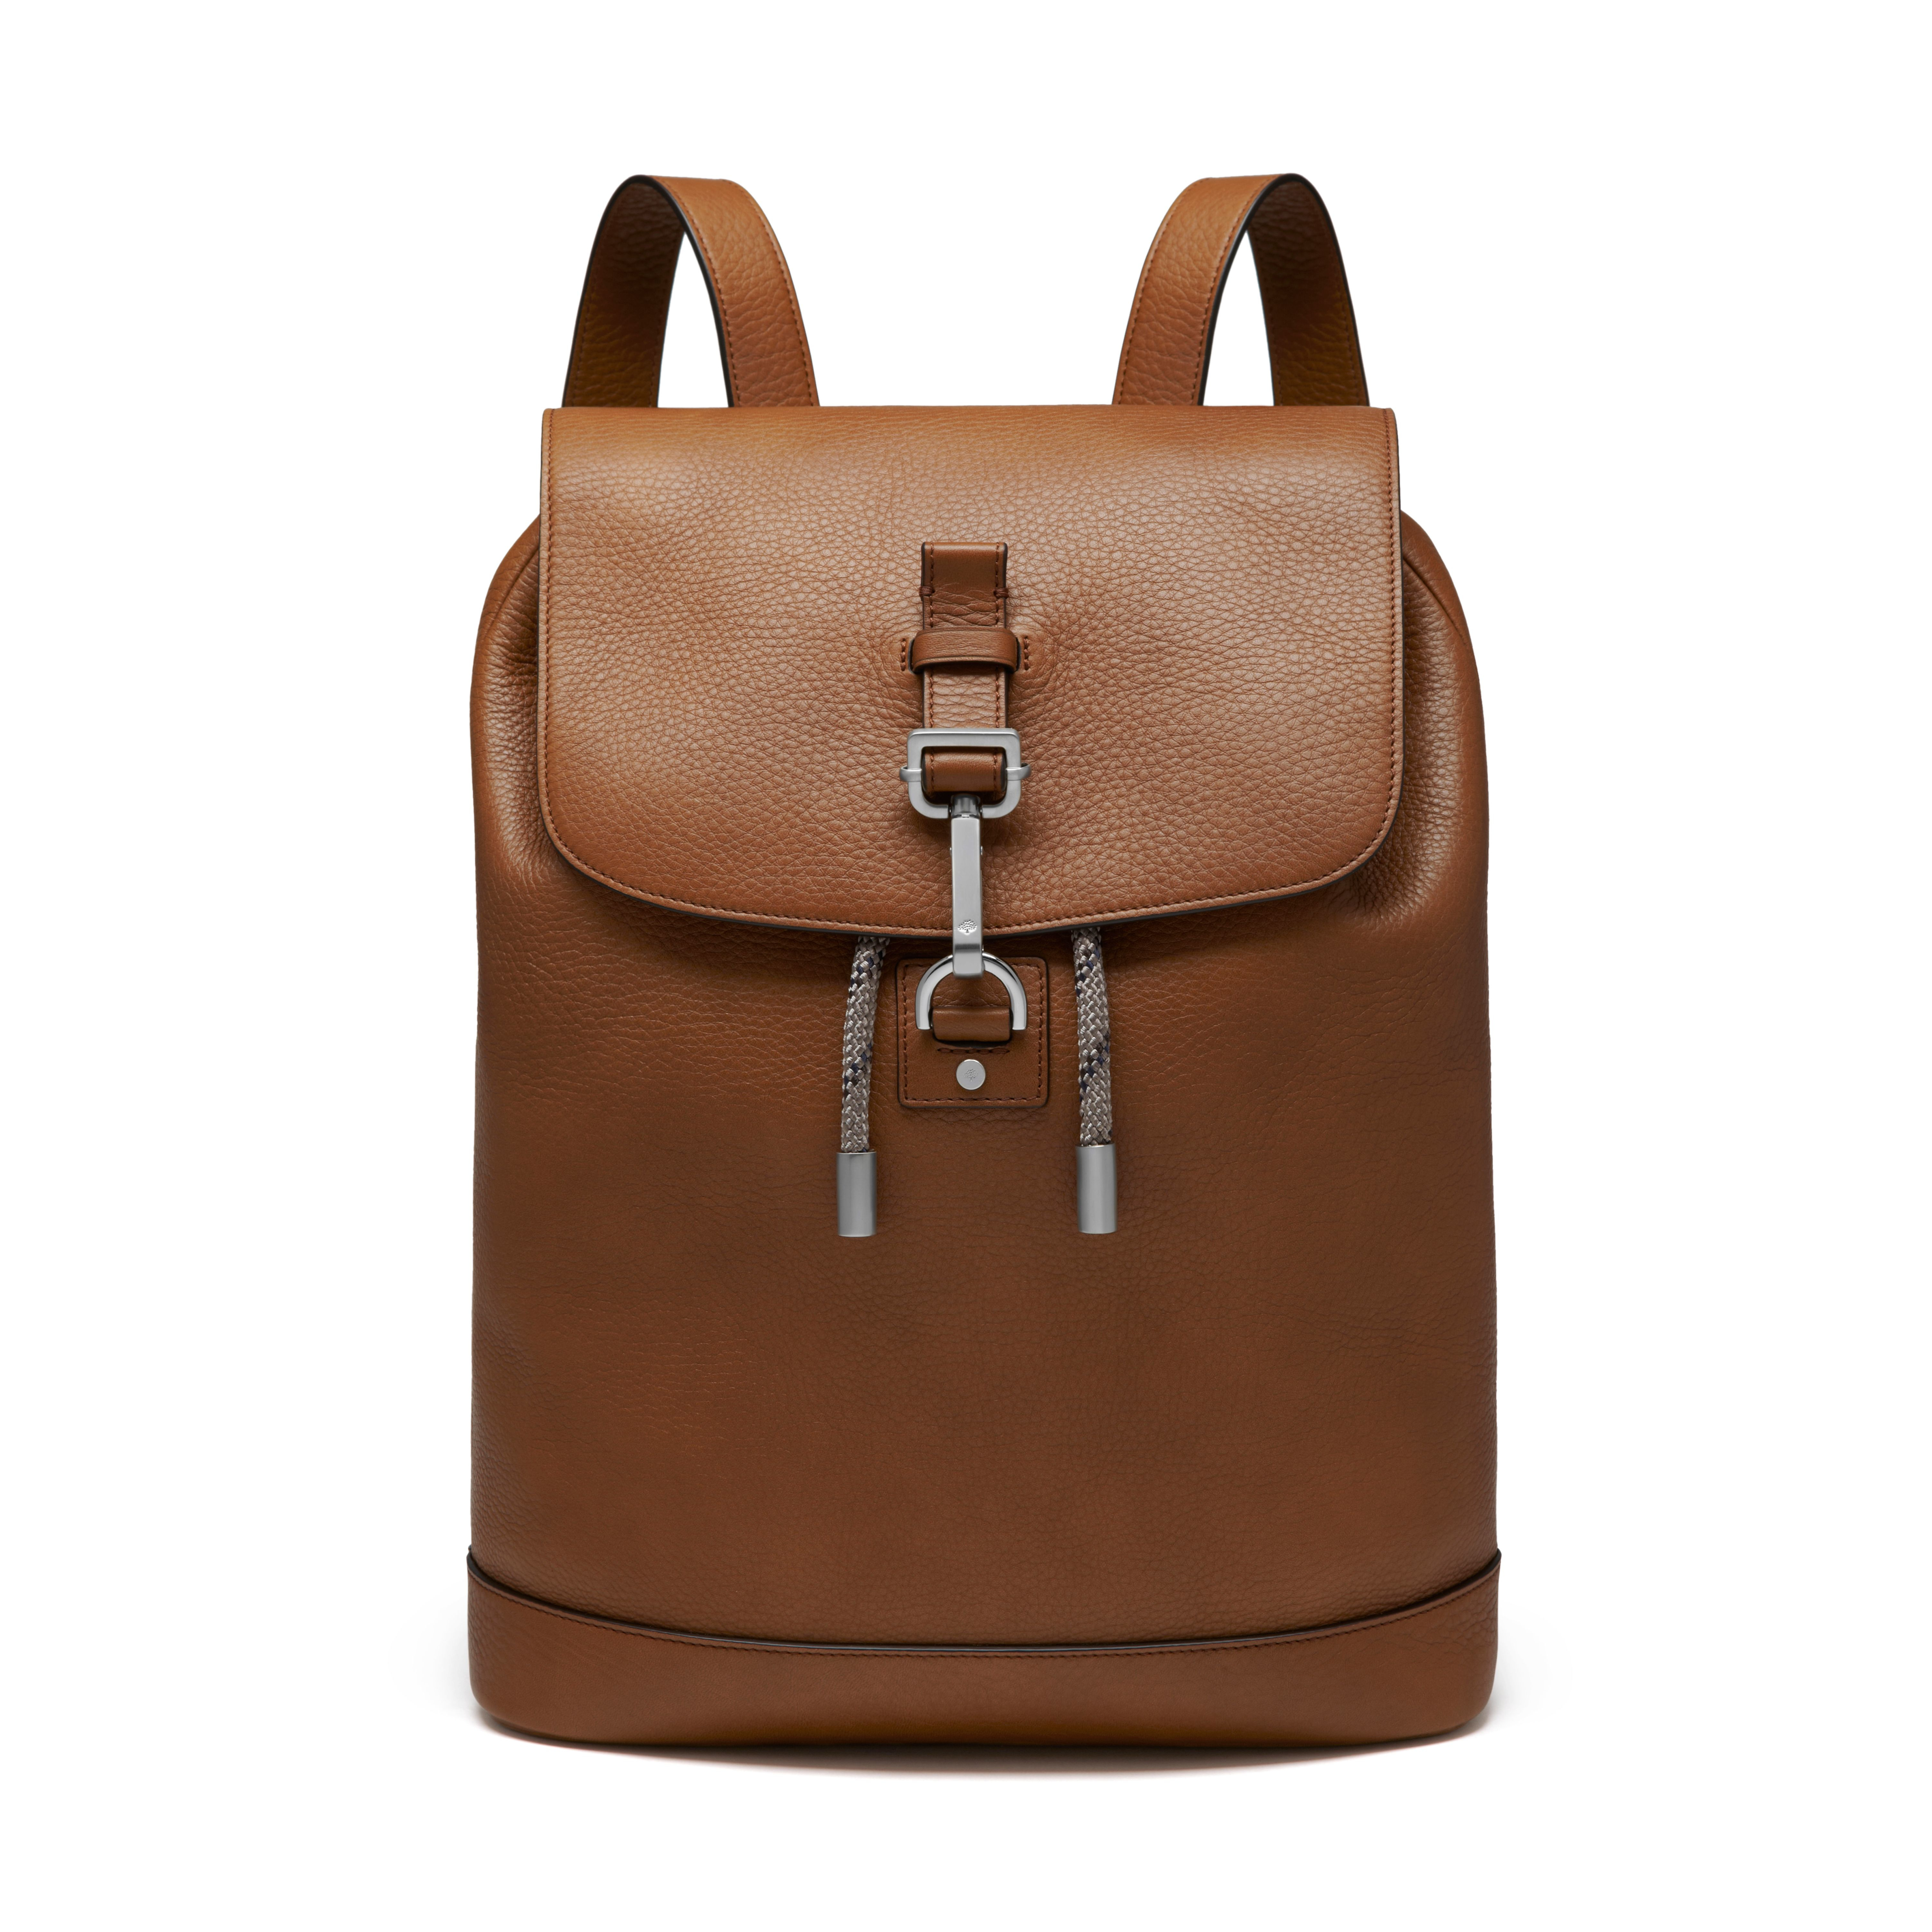 ad86cedef2 ... bag coffeemulberry bayswatermulberry bayswater totebeautiful 4a568  80164  france mulberry small marty backpack in brown lyst 08db3 5bd24